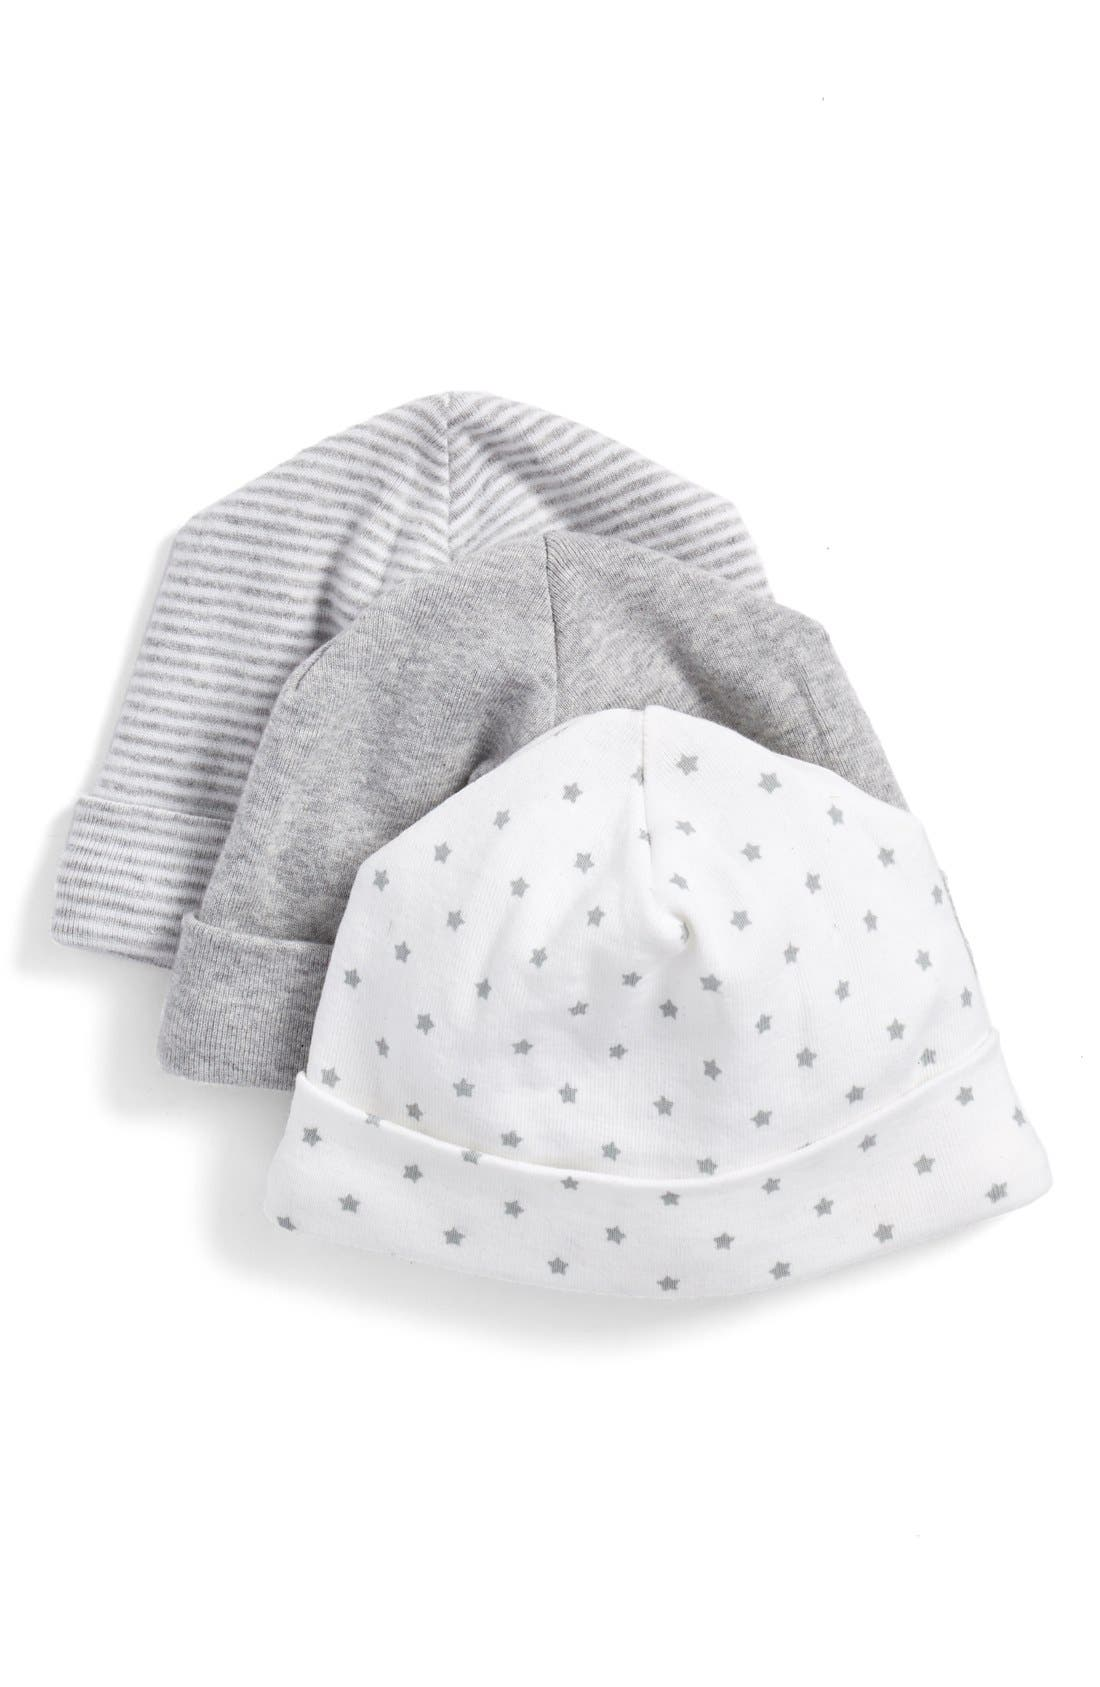 Cotton Hats,                         Main,                         color, GREY ASH HEATHER PACK